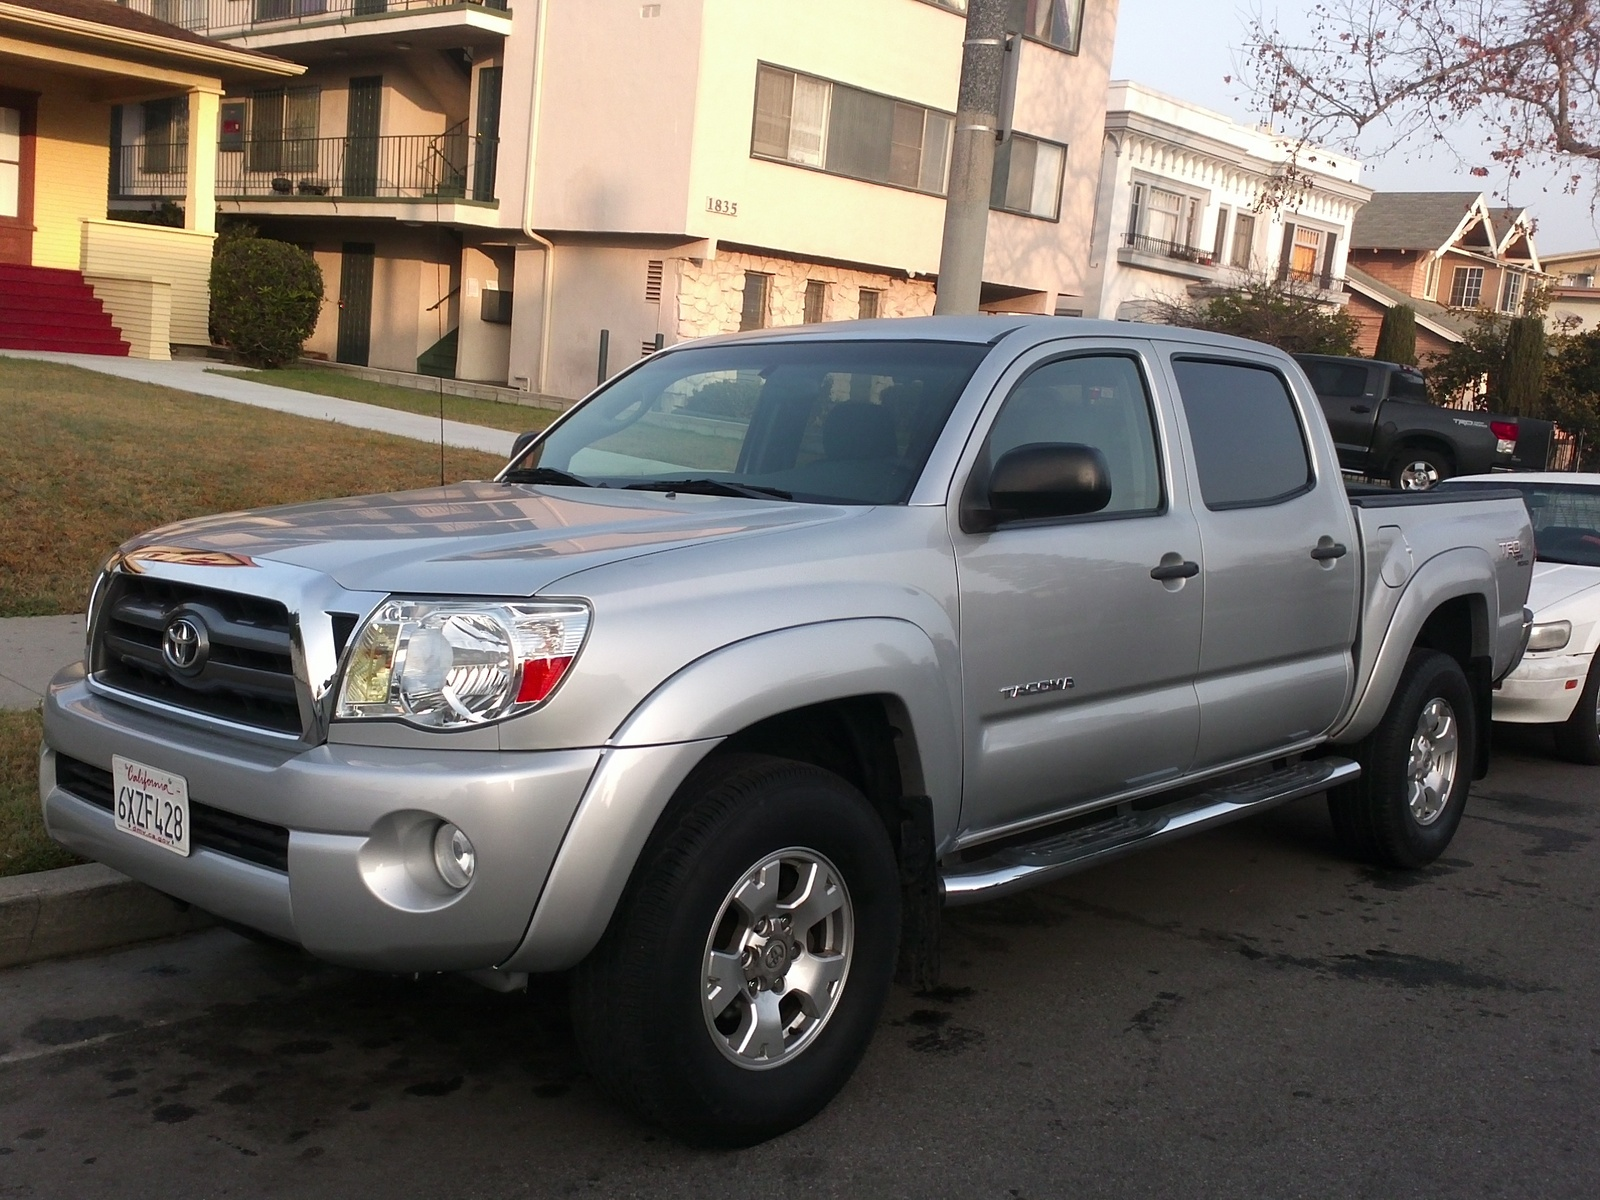 2005 toyota tacoma pictures cargurus. Black Bedroom Furniture Sets. Home Design Ideas